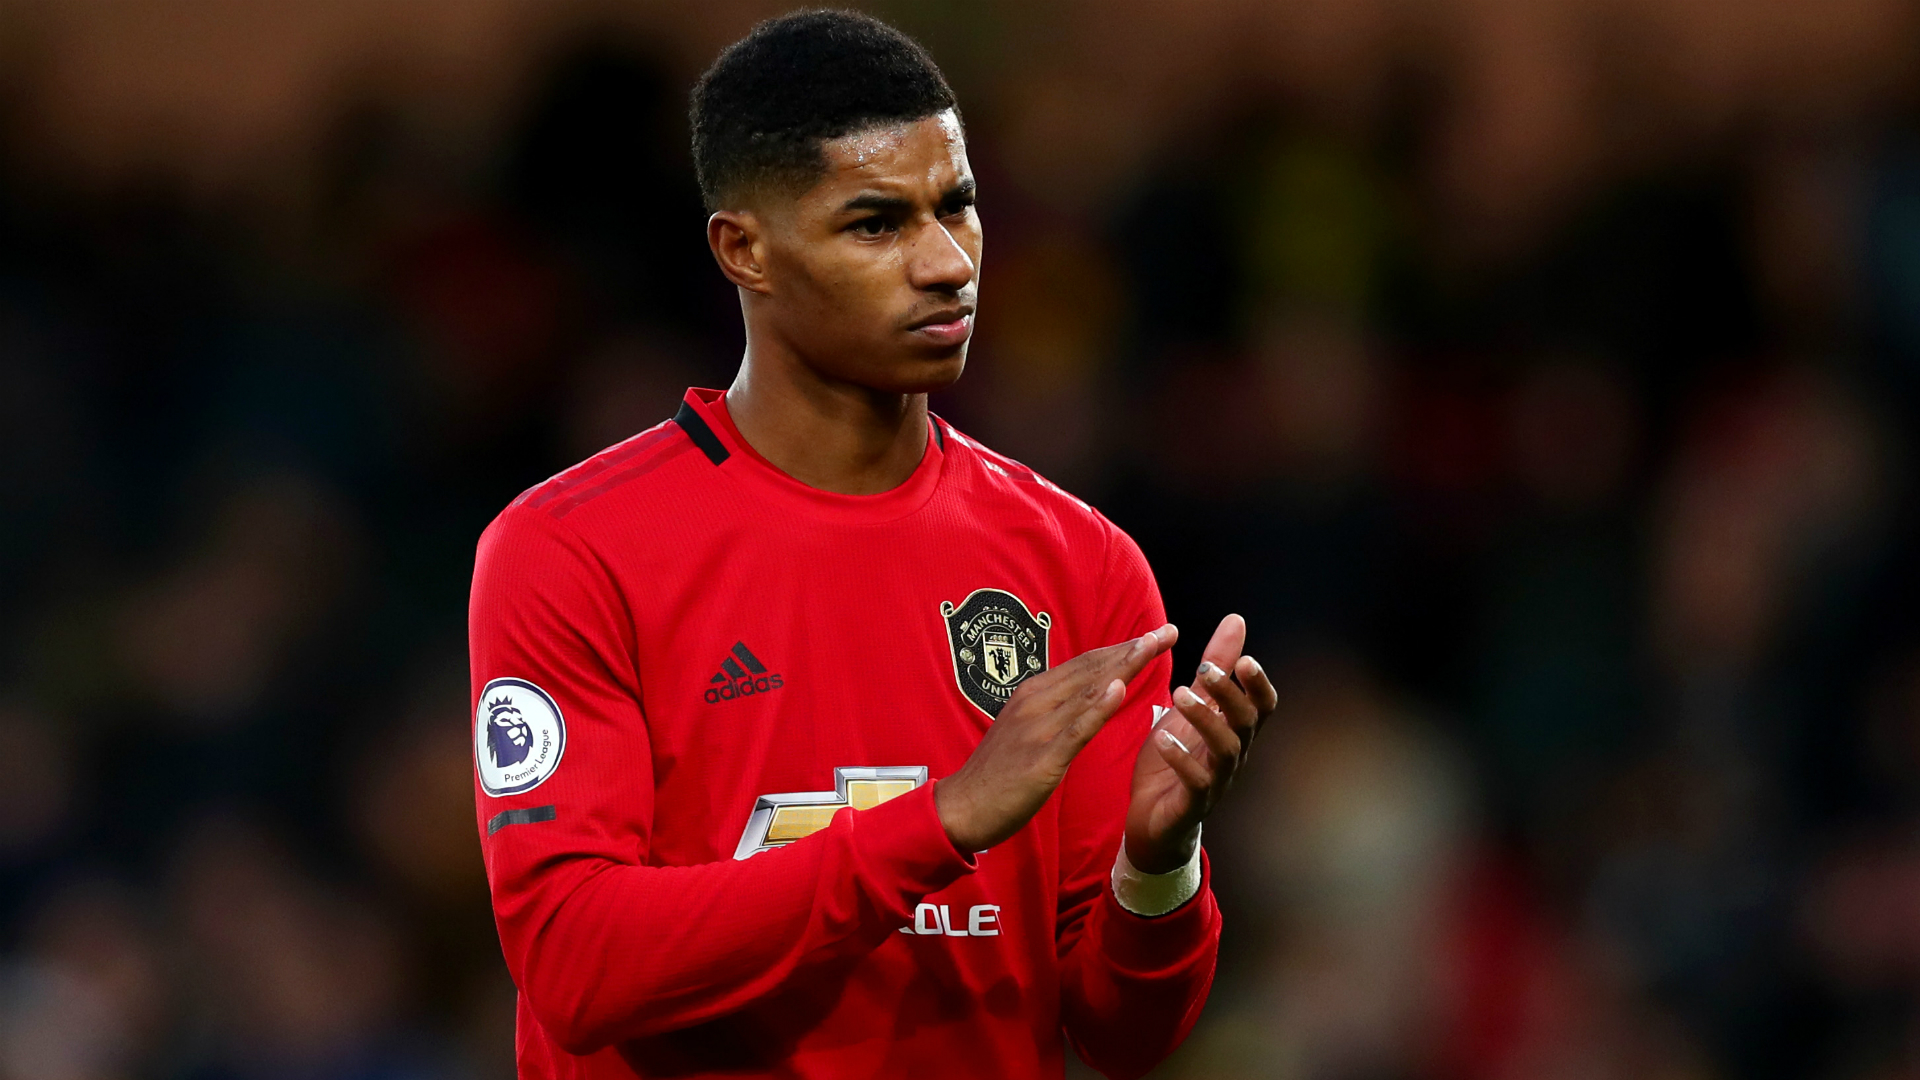 Manchester United say Marcus Rashford is doing well in his recovery from injury, which continues while English football is suspended.